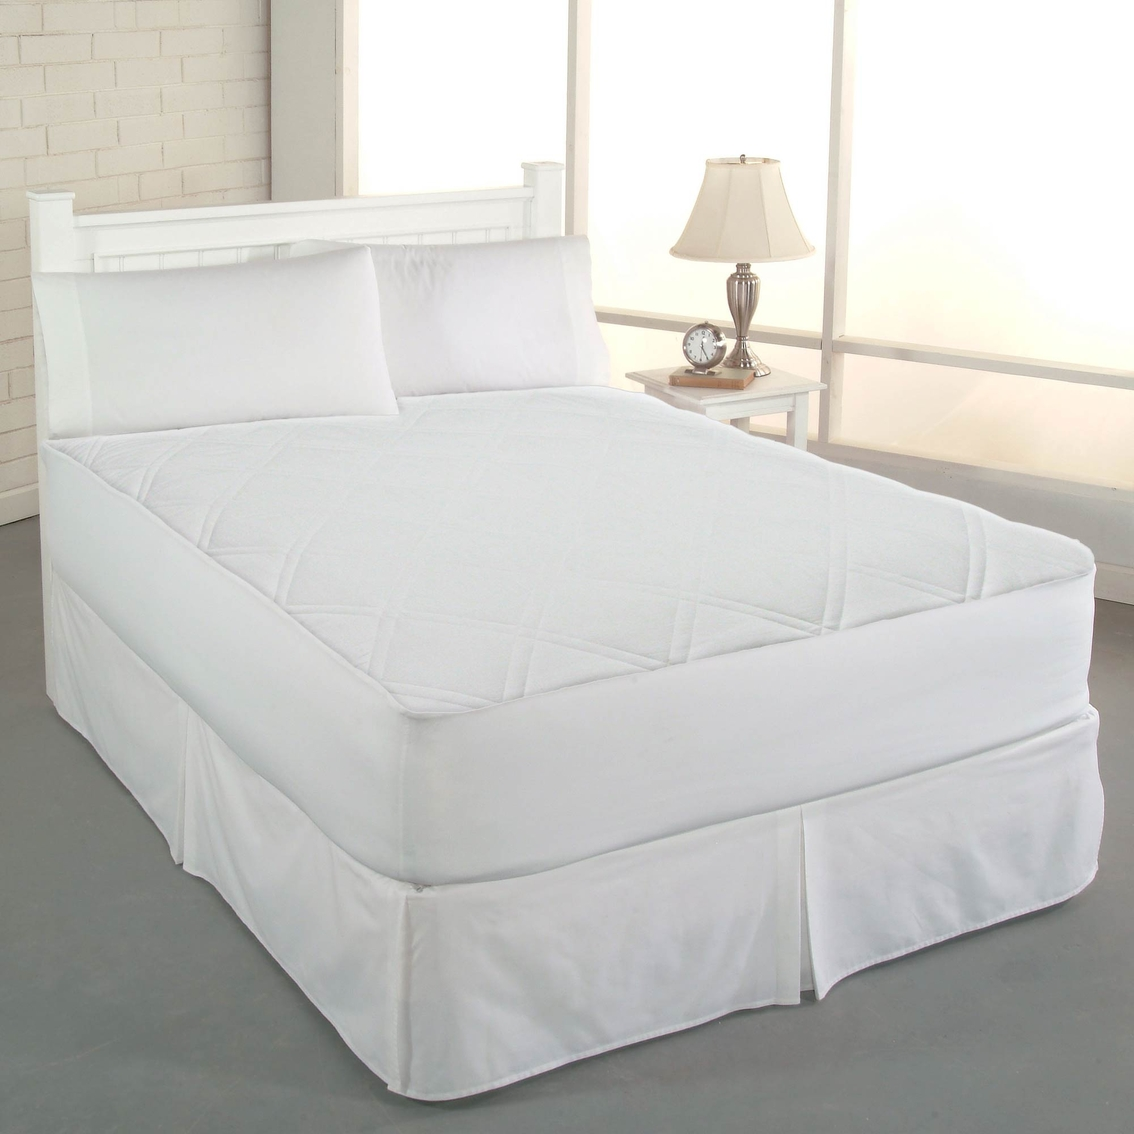 Clean Fresh Odor Eliminating Cotton Mattress Pad